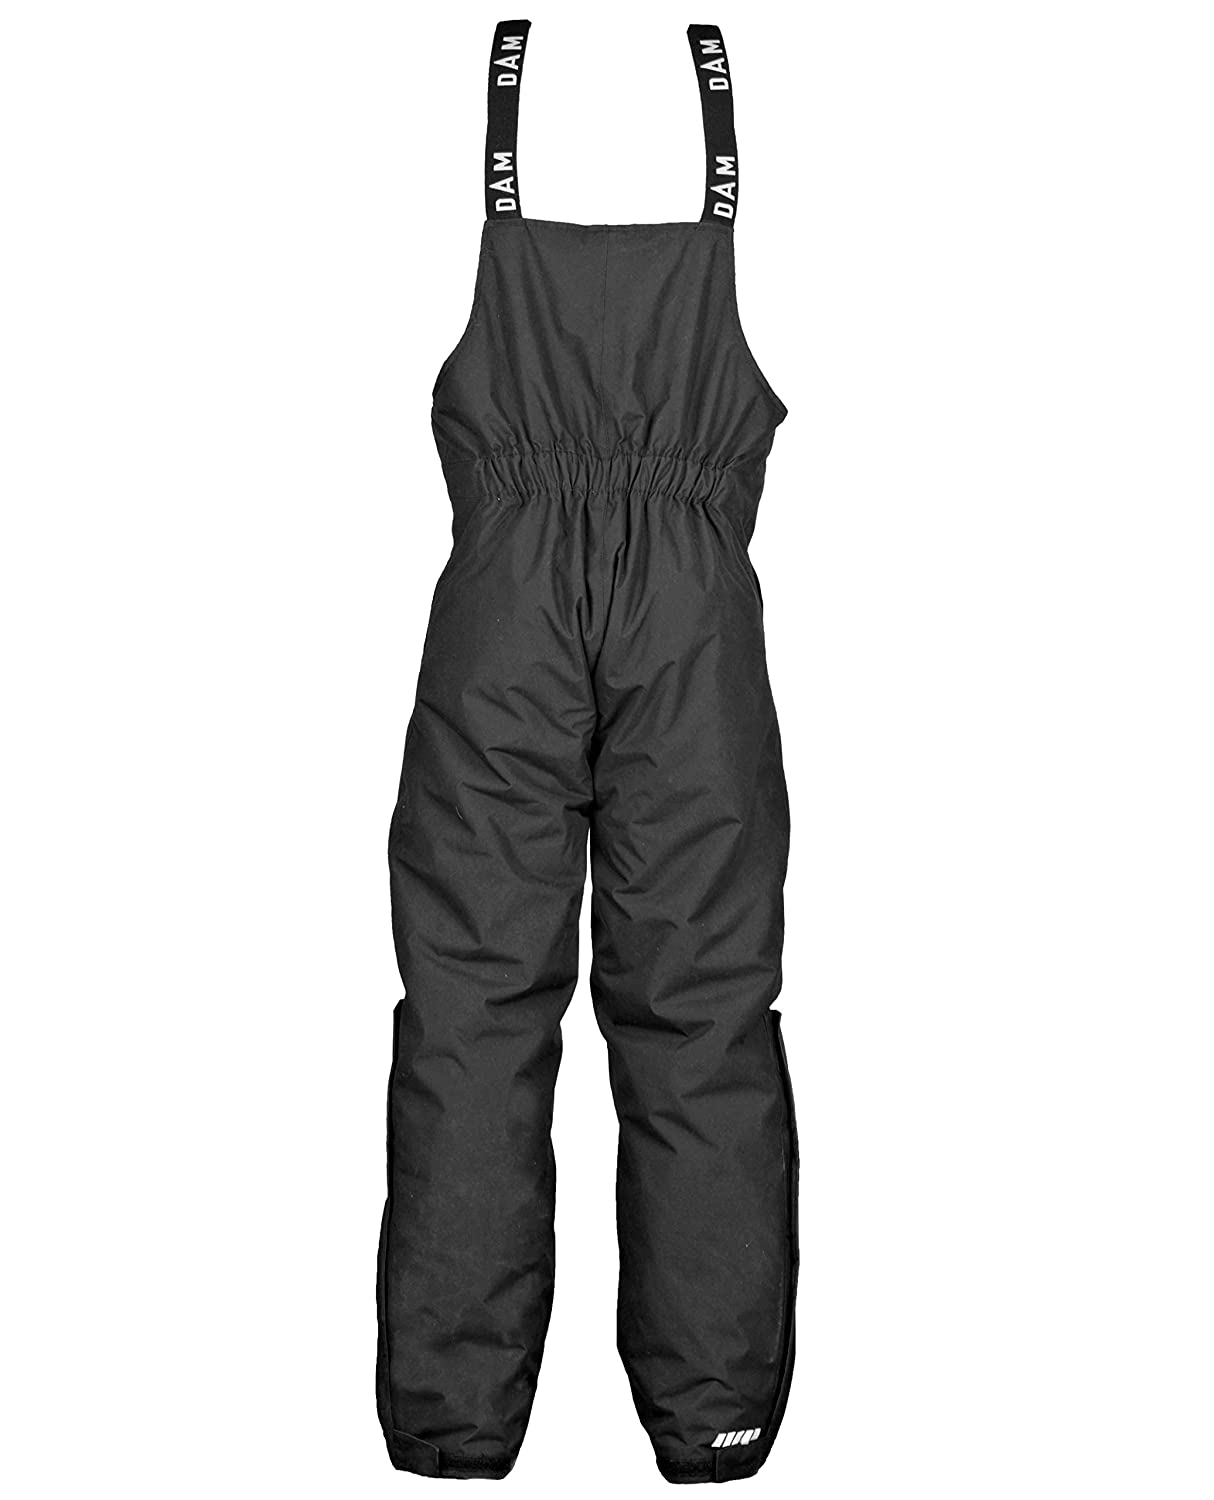 Angelsport Dam Winter Thermo Latzhose Winterhose 100% Wasserdicht Gr Hosen & Shorts L